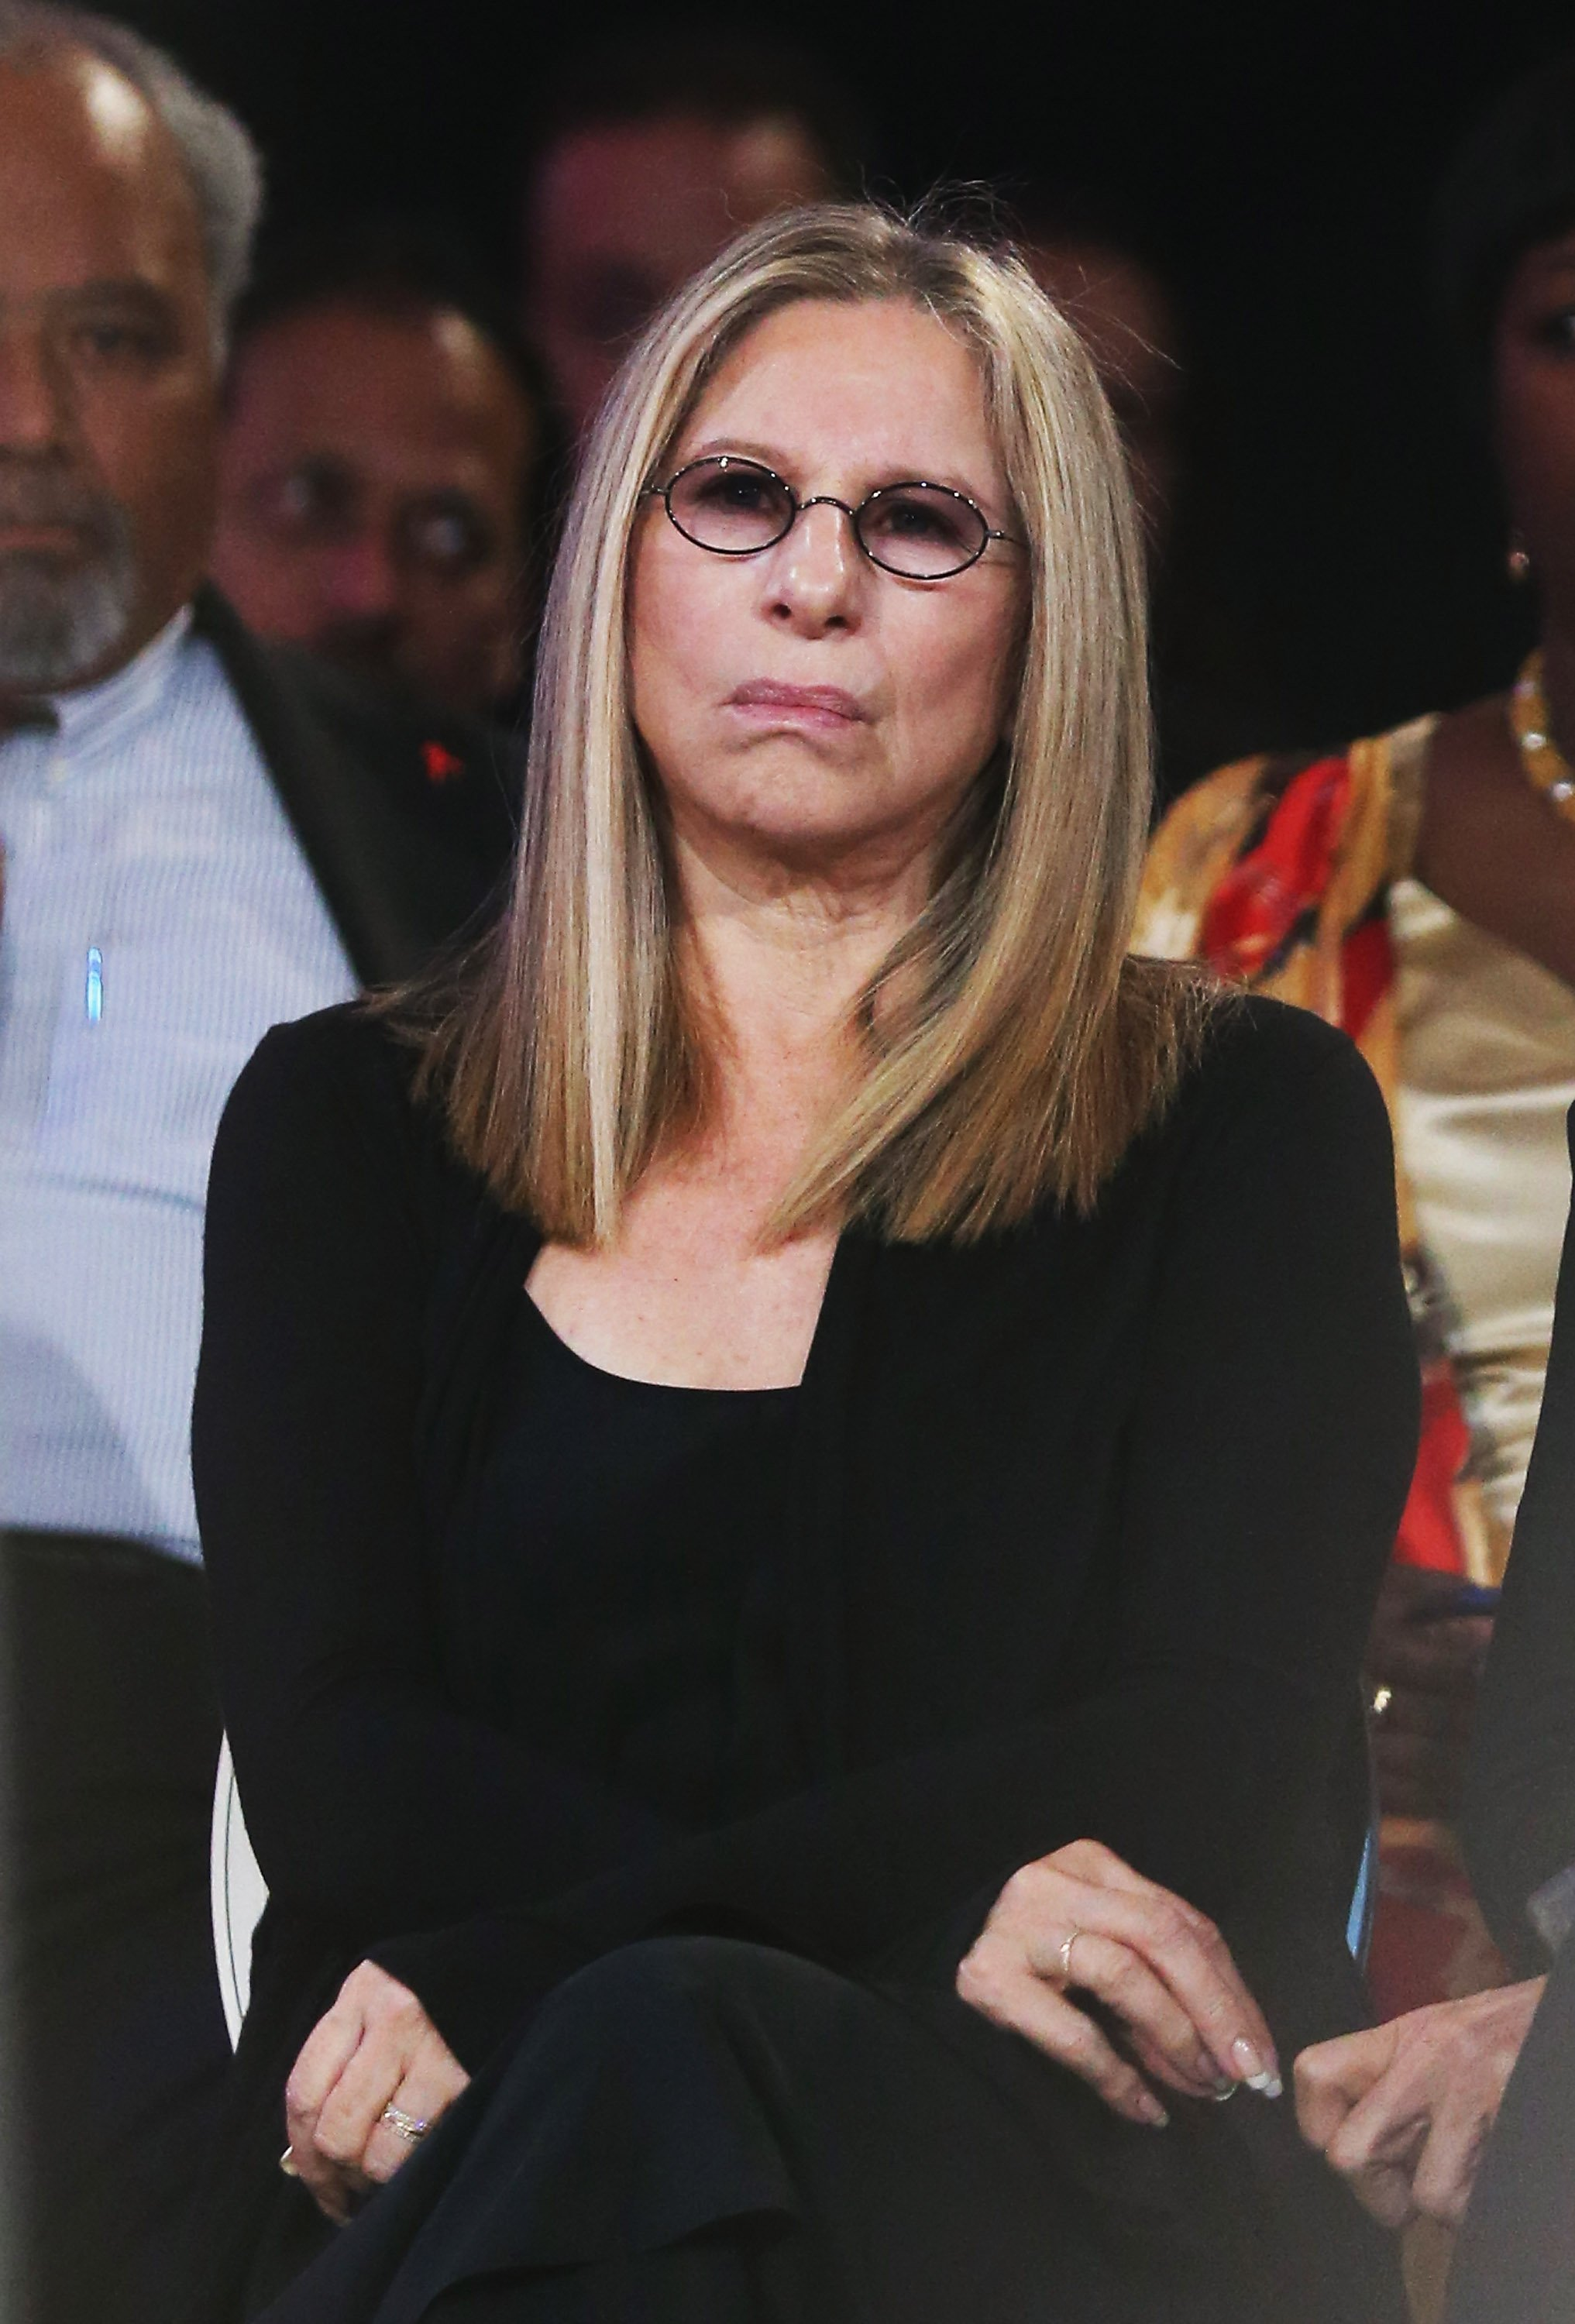 Barbra Streisand at the 2015 Clinton Global Initiative meeting in New York City | Photo: Getty Images